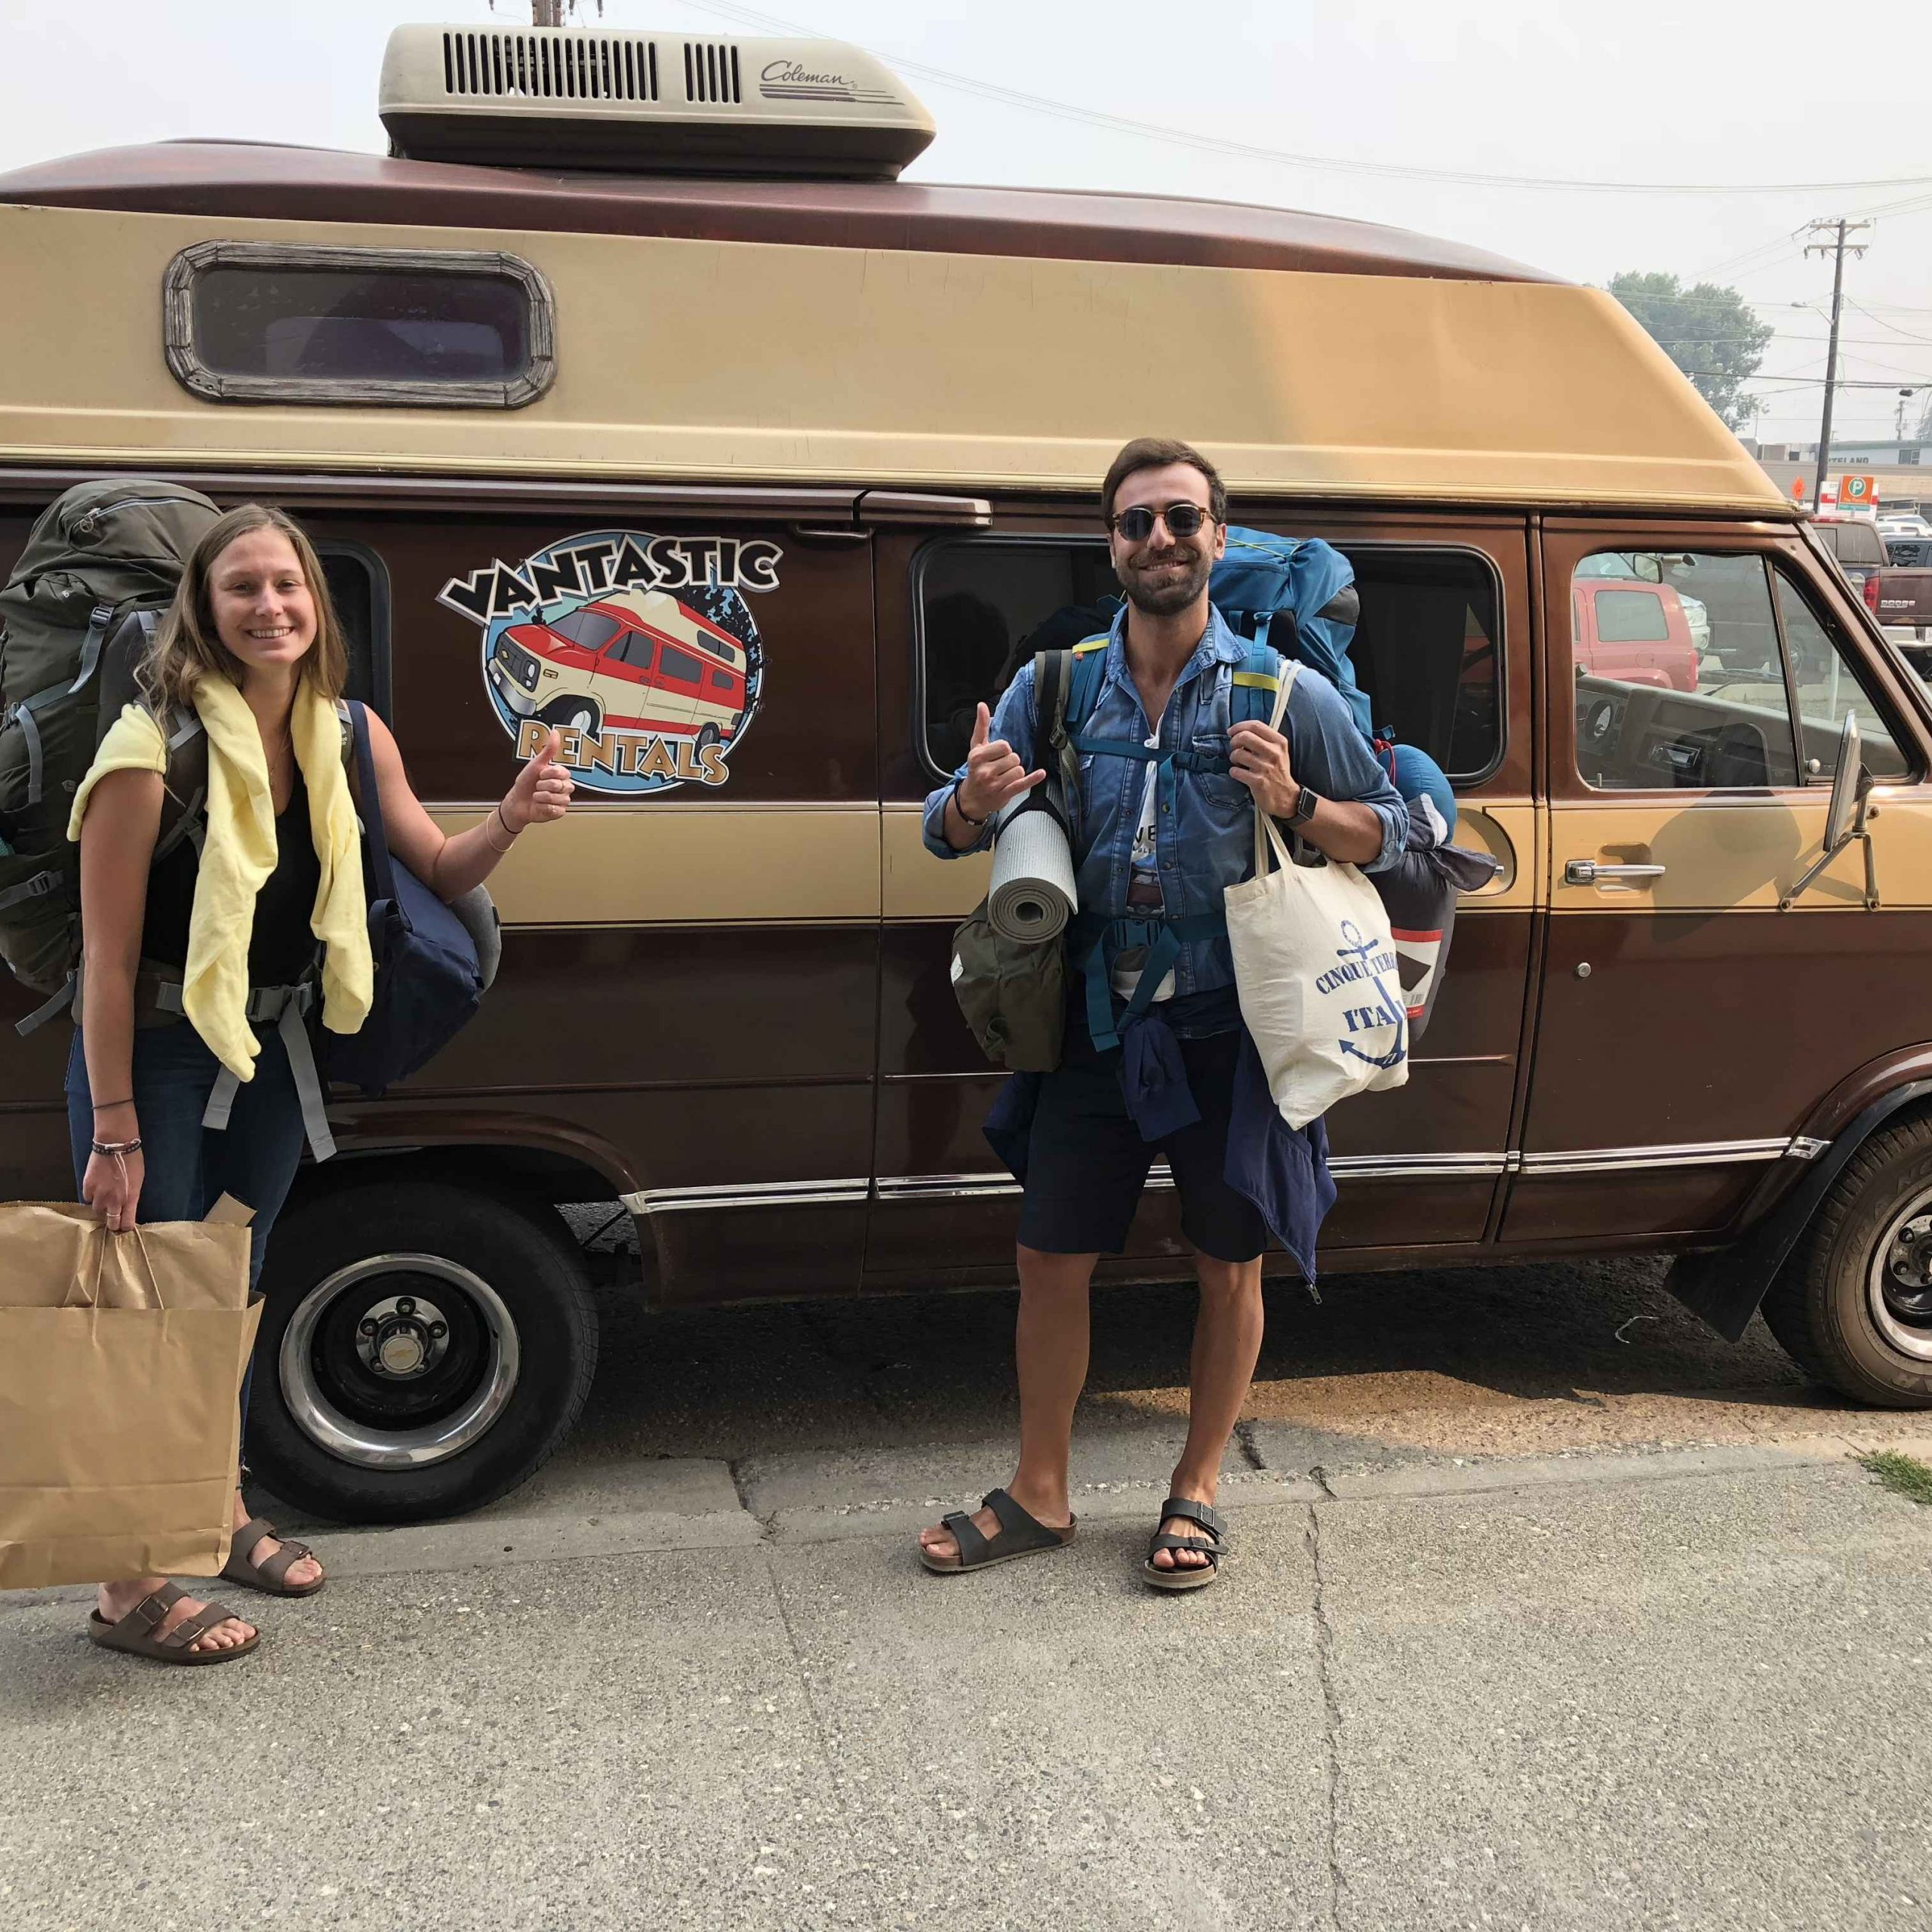 A couple of German adventures set out to tour in Canada with a camper van from Vernon BC.